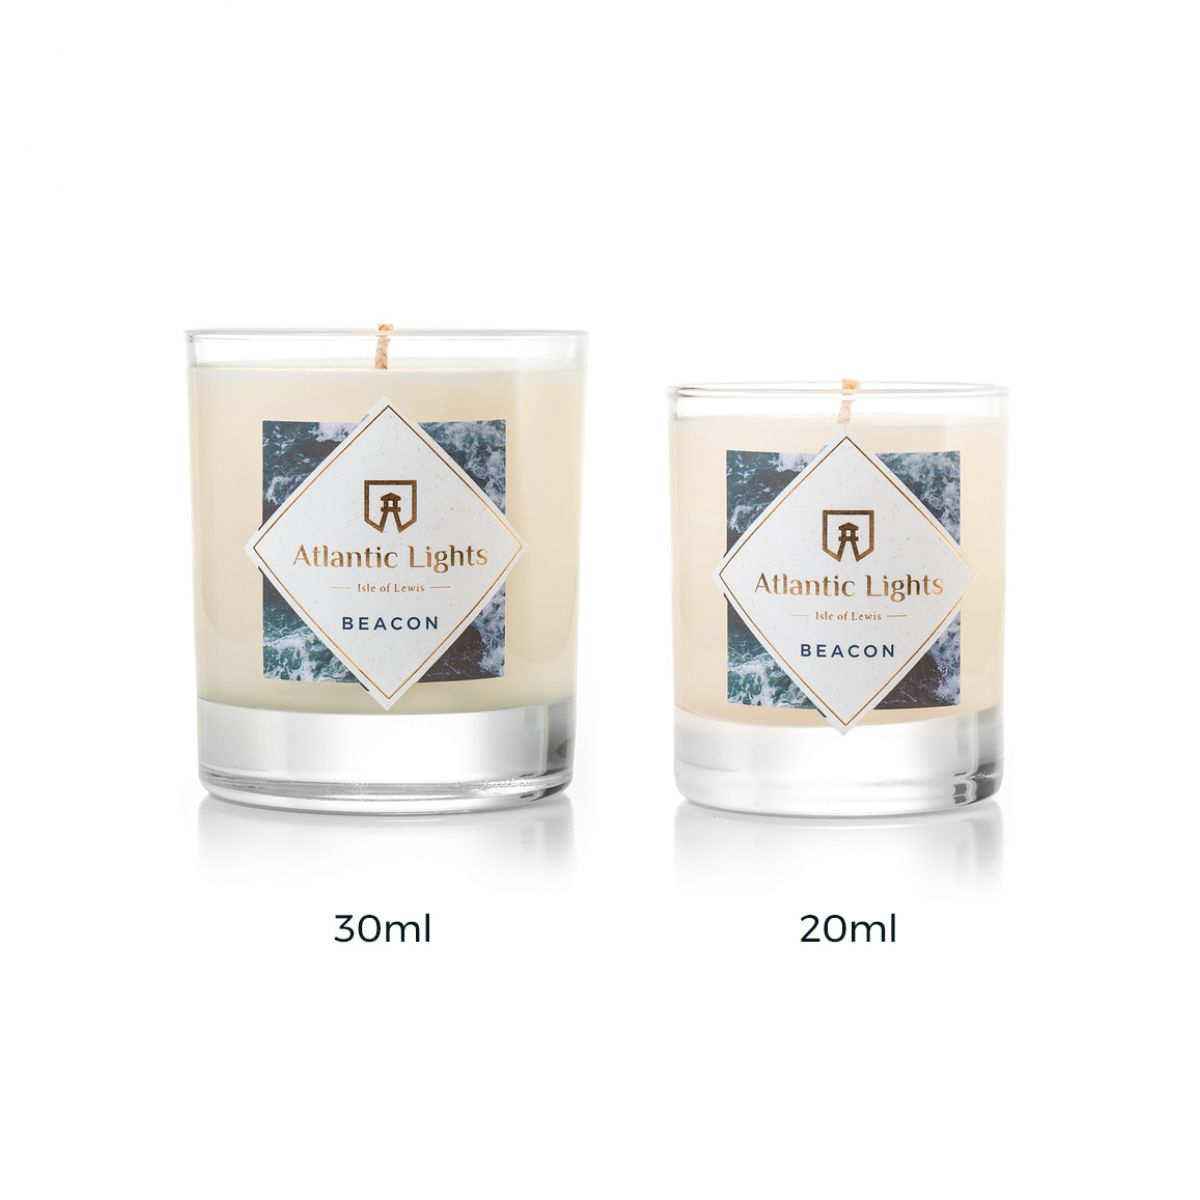 Beacon Soy Wax Candle